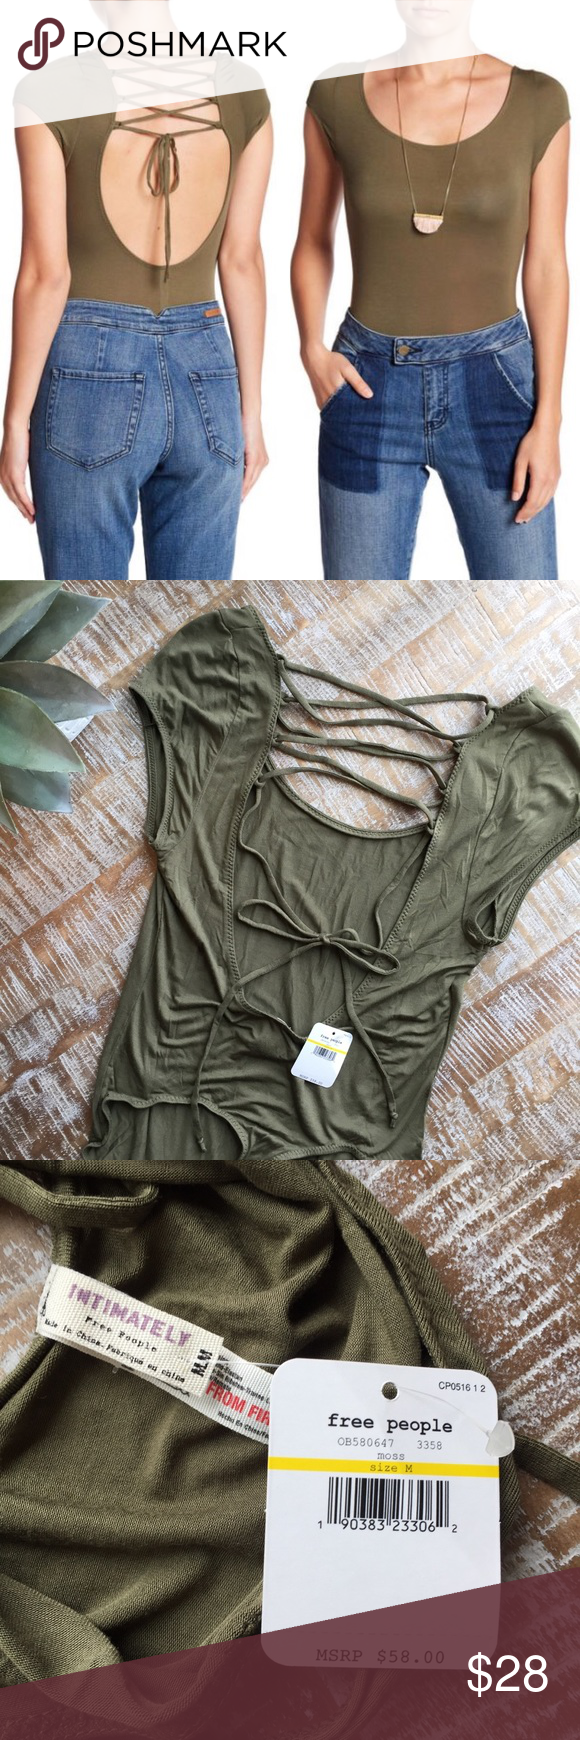 f33b18b009 Free People Body Suit Free People All About the Back Bodysuit in Moss Green.  Size   Medium. Thong style